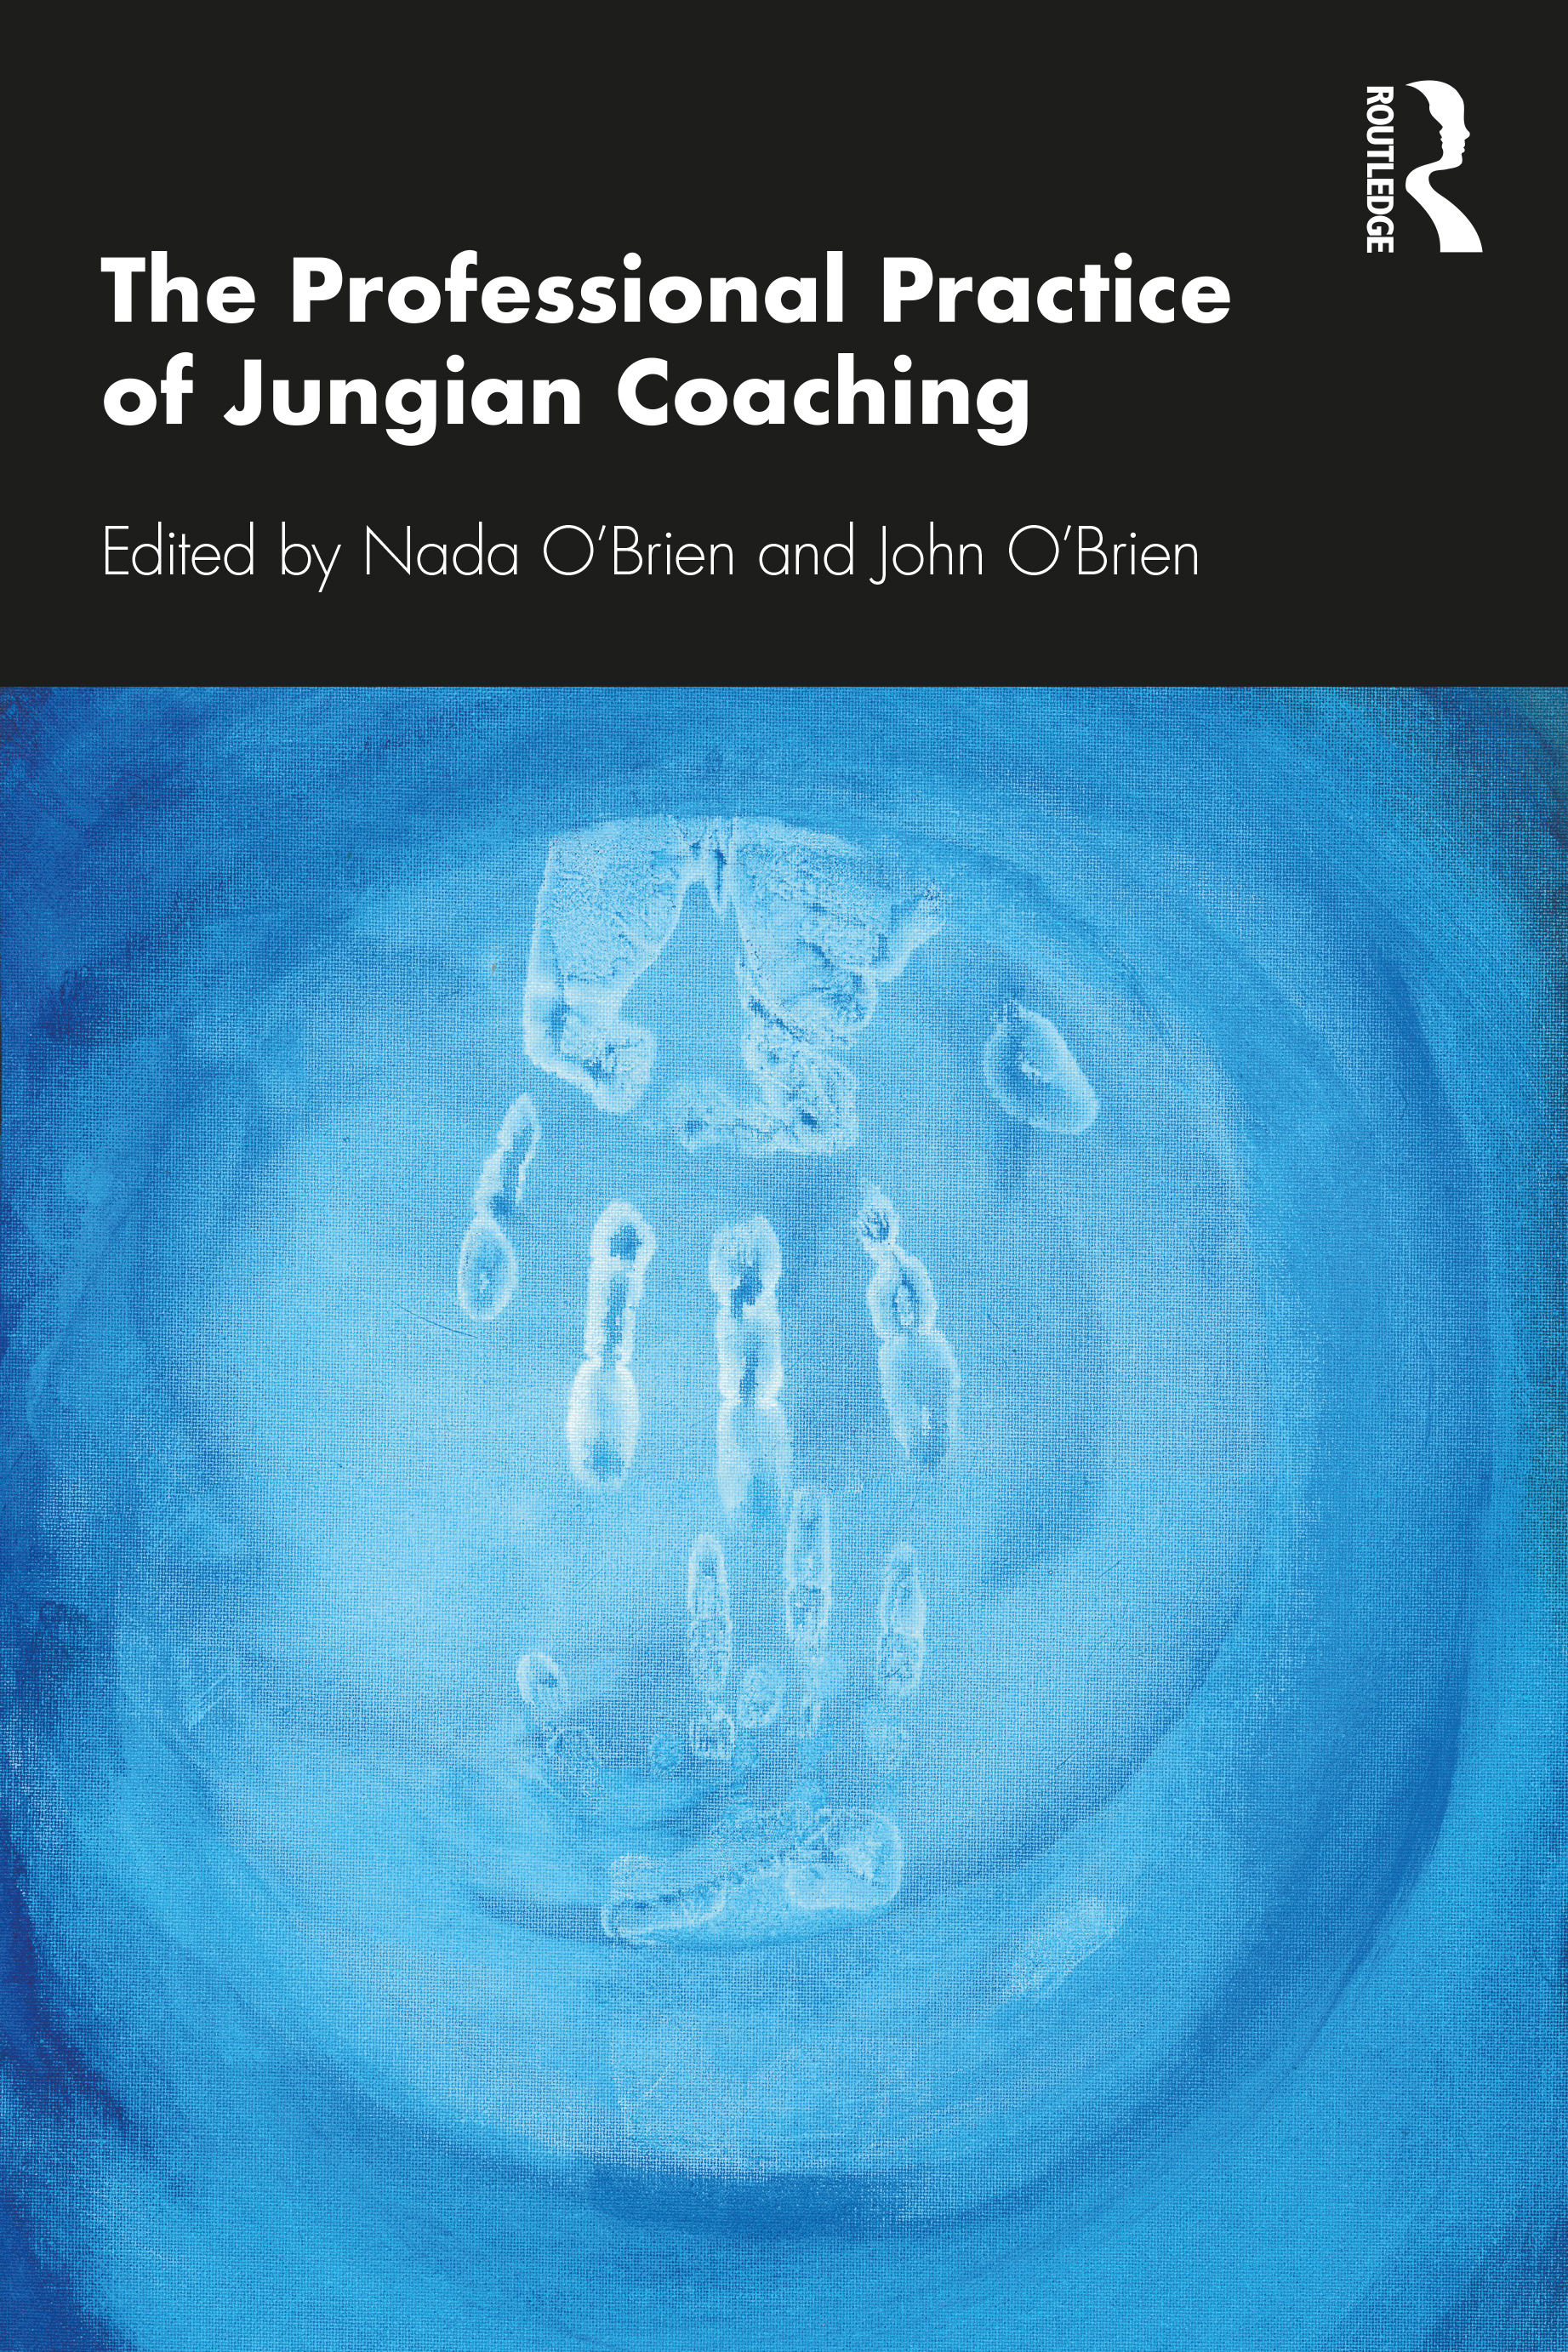 The Professional Practice of Jungian Coaching: Corporate Analytical Psychology book cover